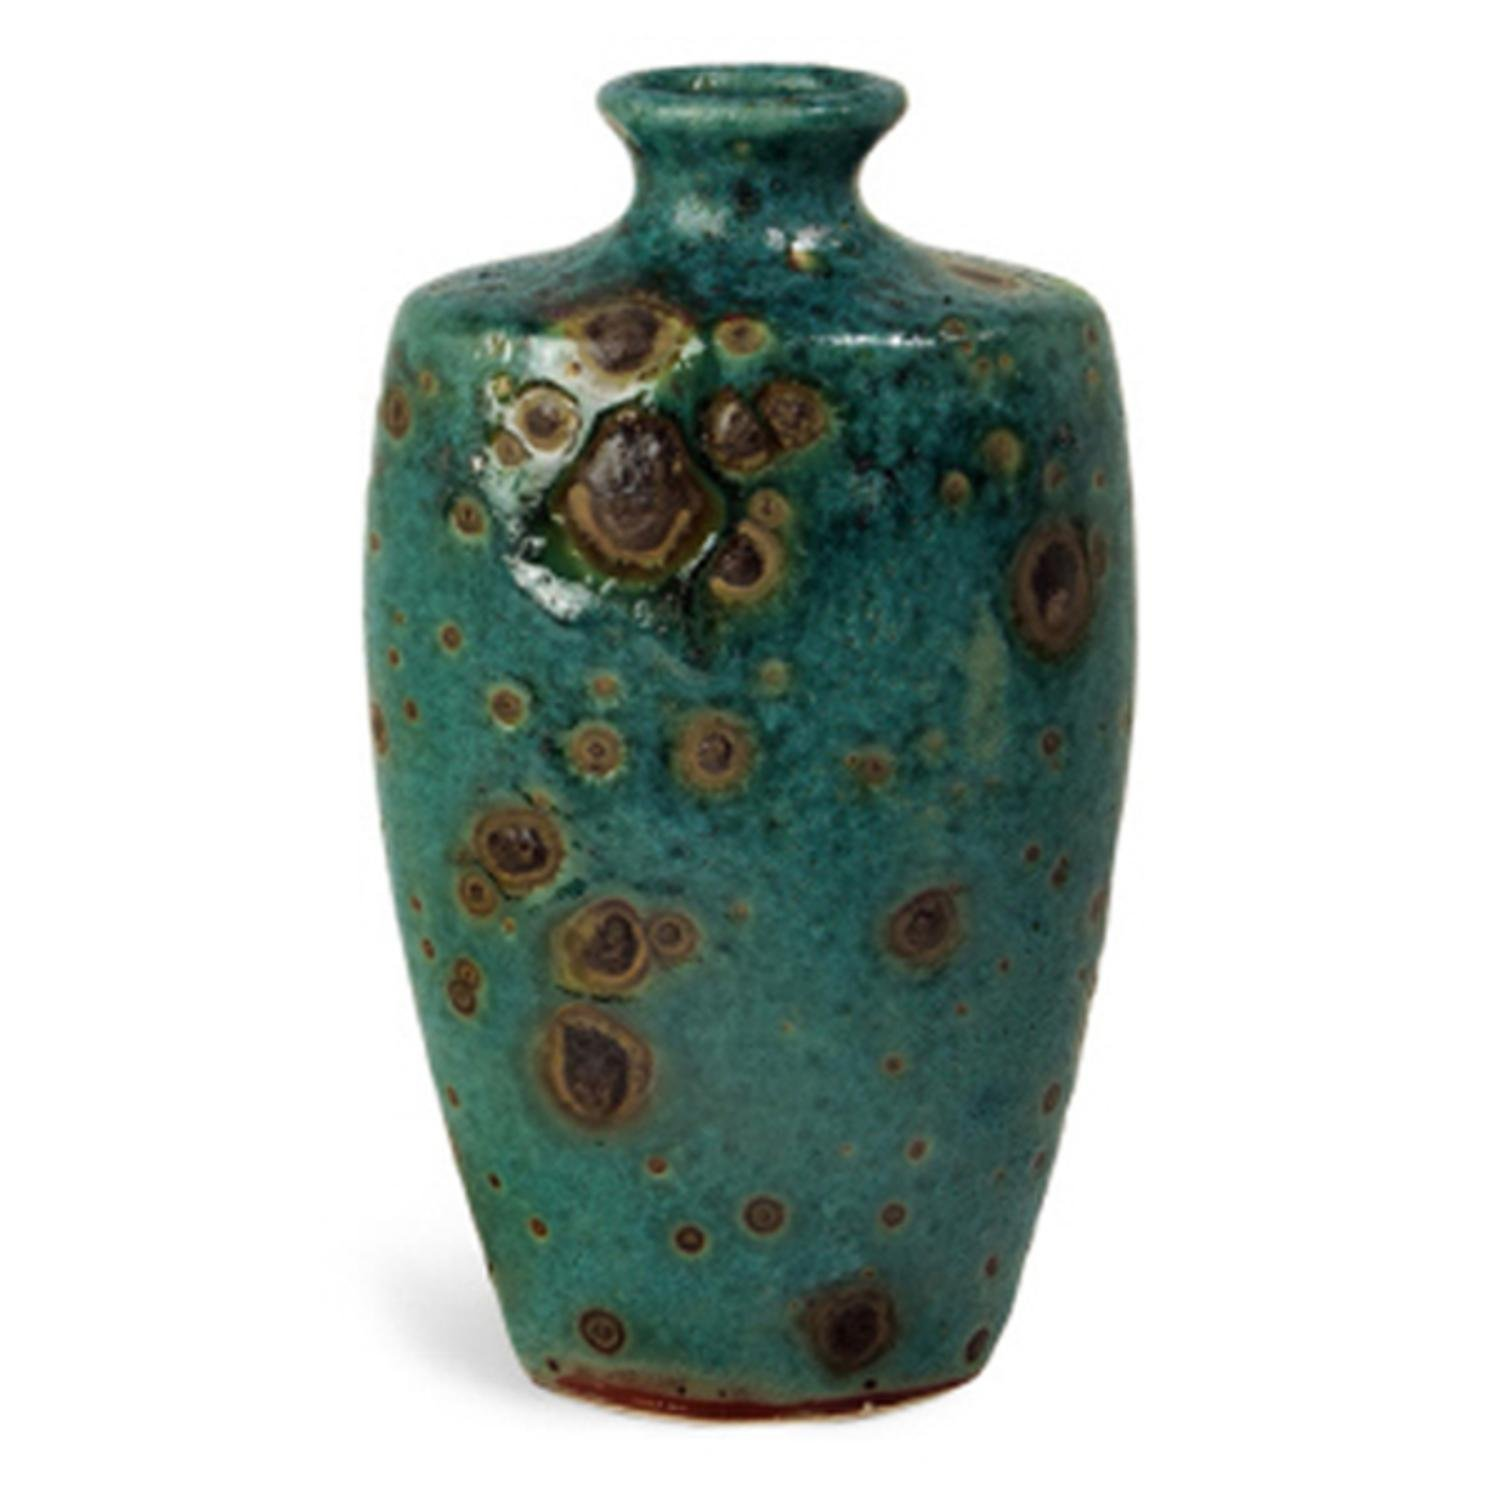 Cheap turquoise vase find turquoise vase deals on line at alibaba get quotations 14 oval turquoise reactive glaze ceramic vase with brown details reviewsmspy